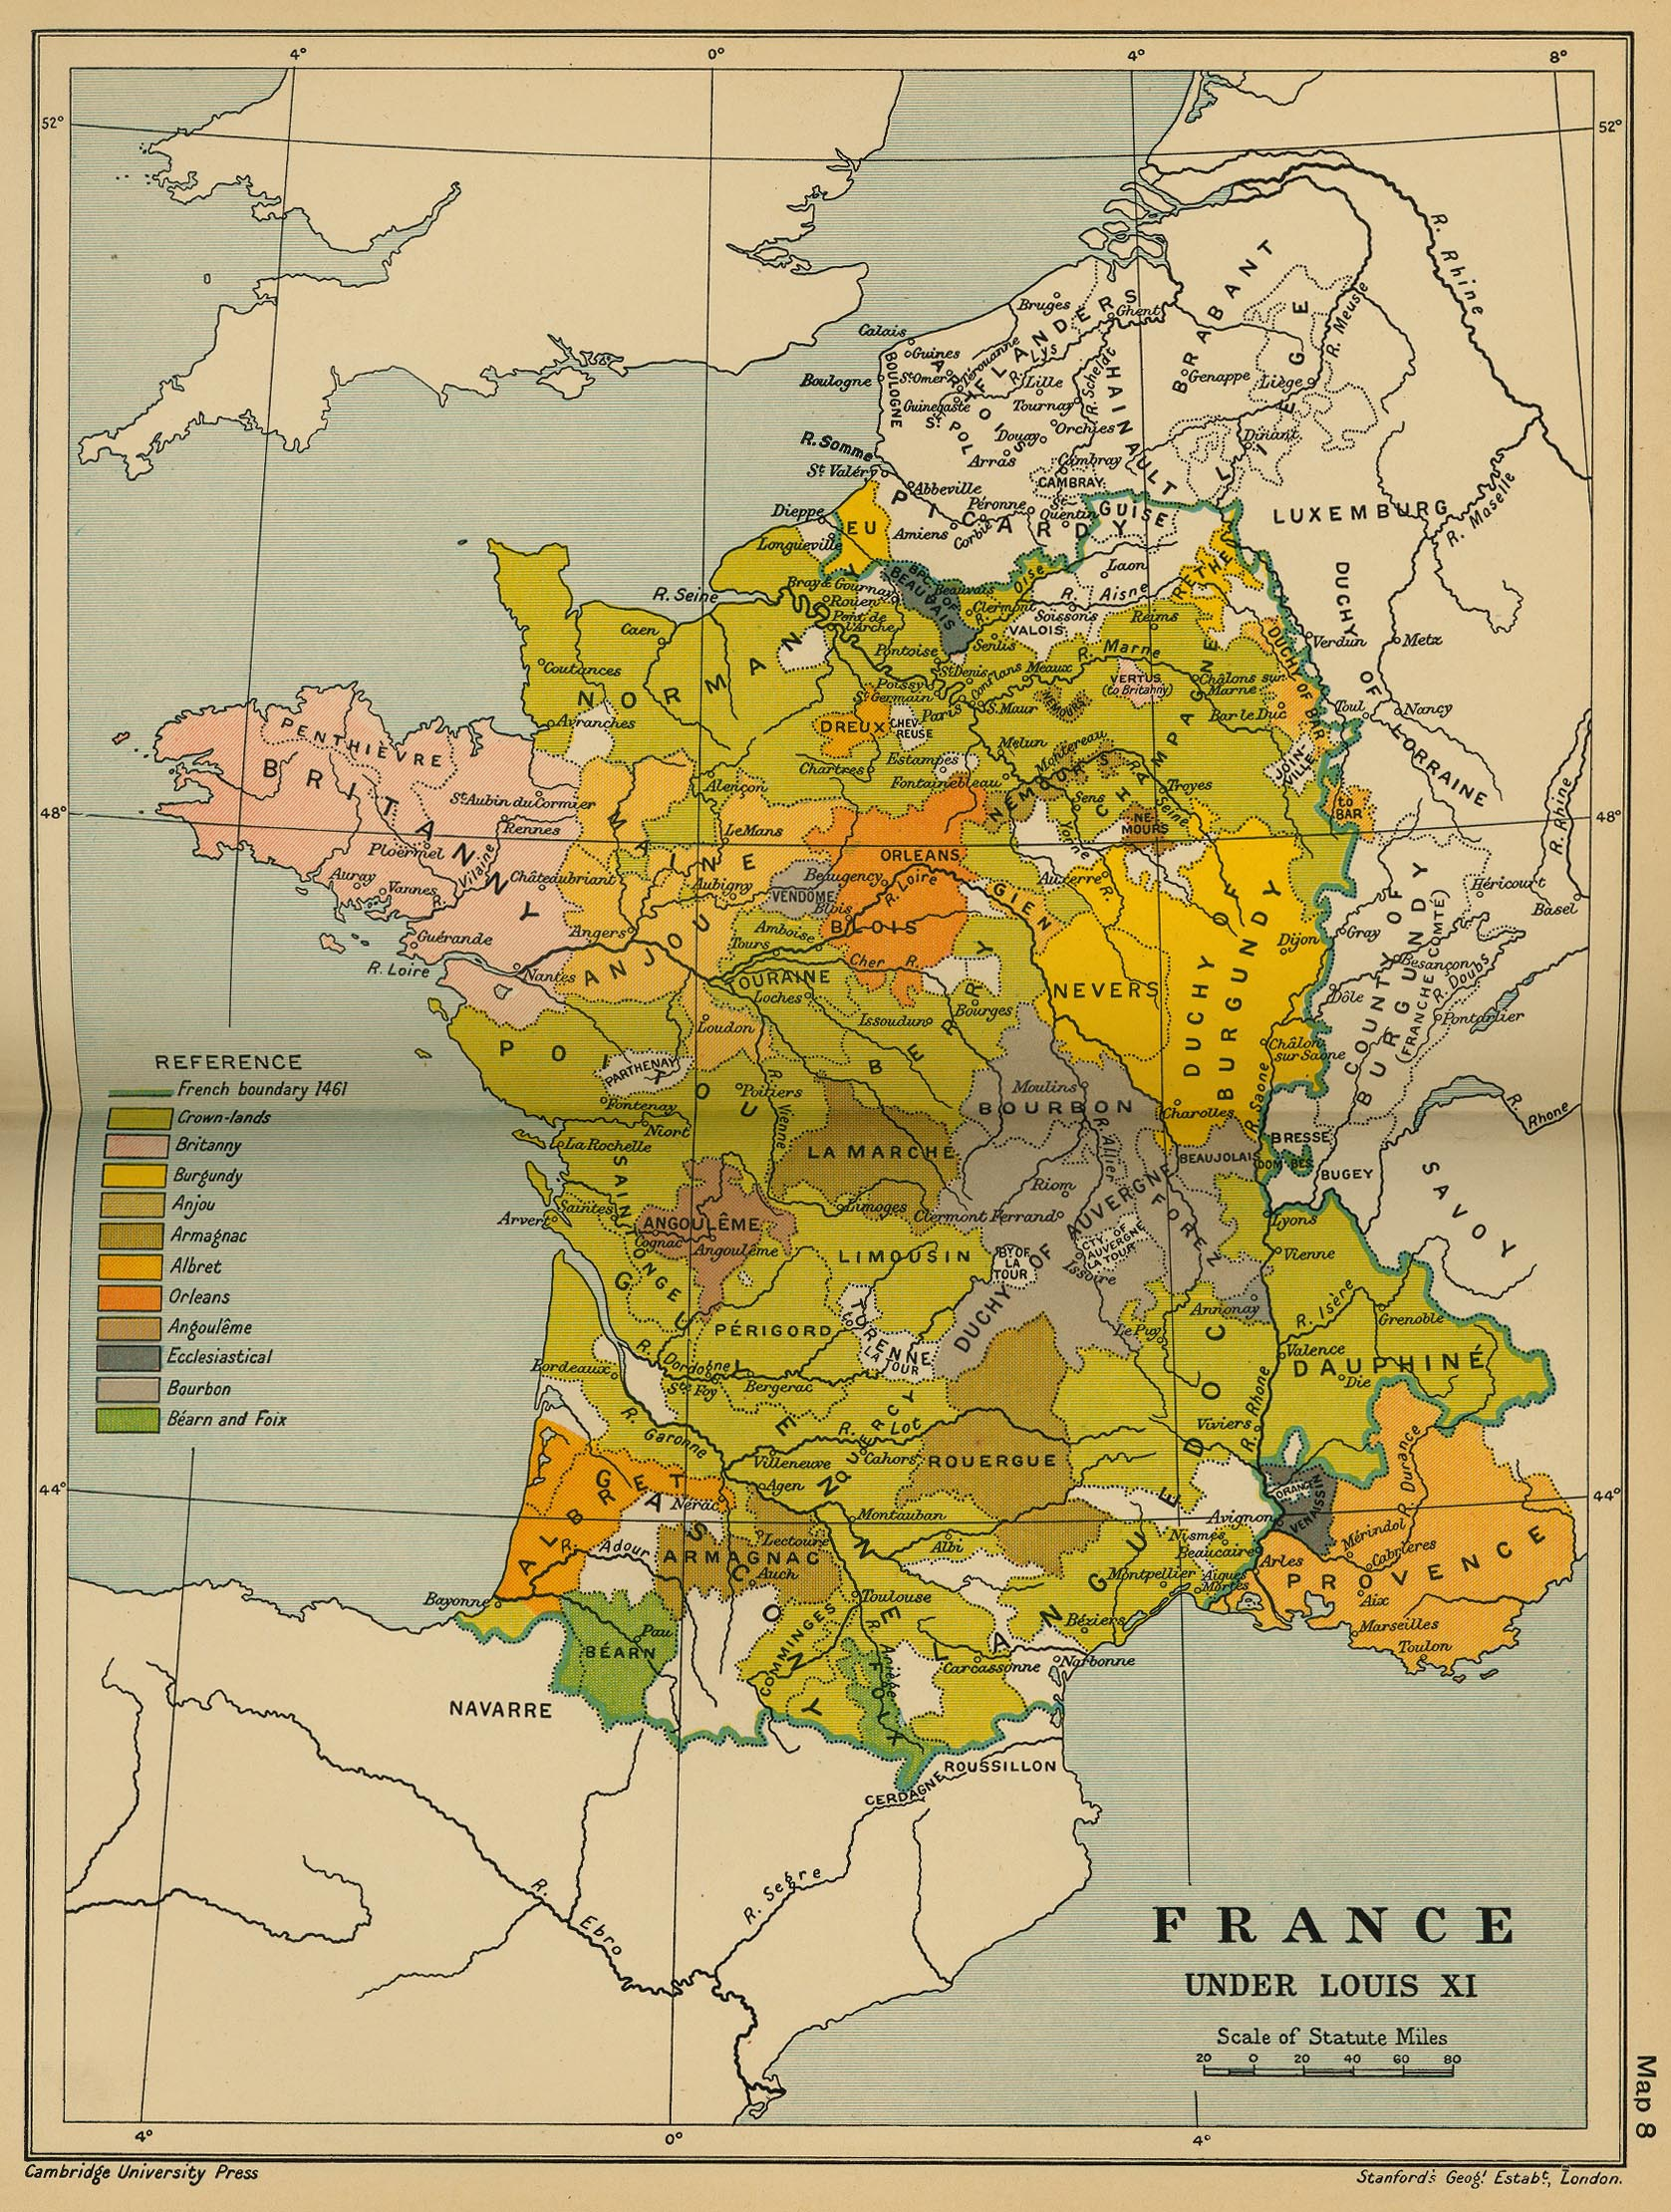 Cambridge modern history atlas 1912 perry castaeda map collection map 7 france under louis xi gumiabroncs Image collections